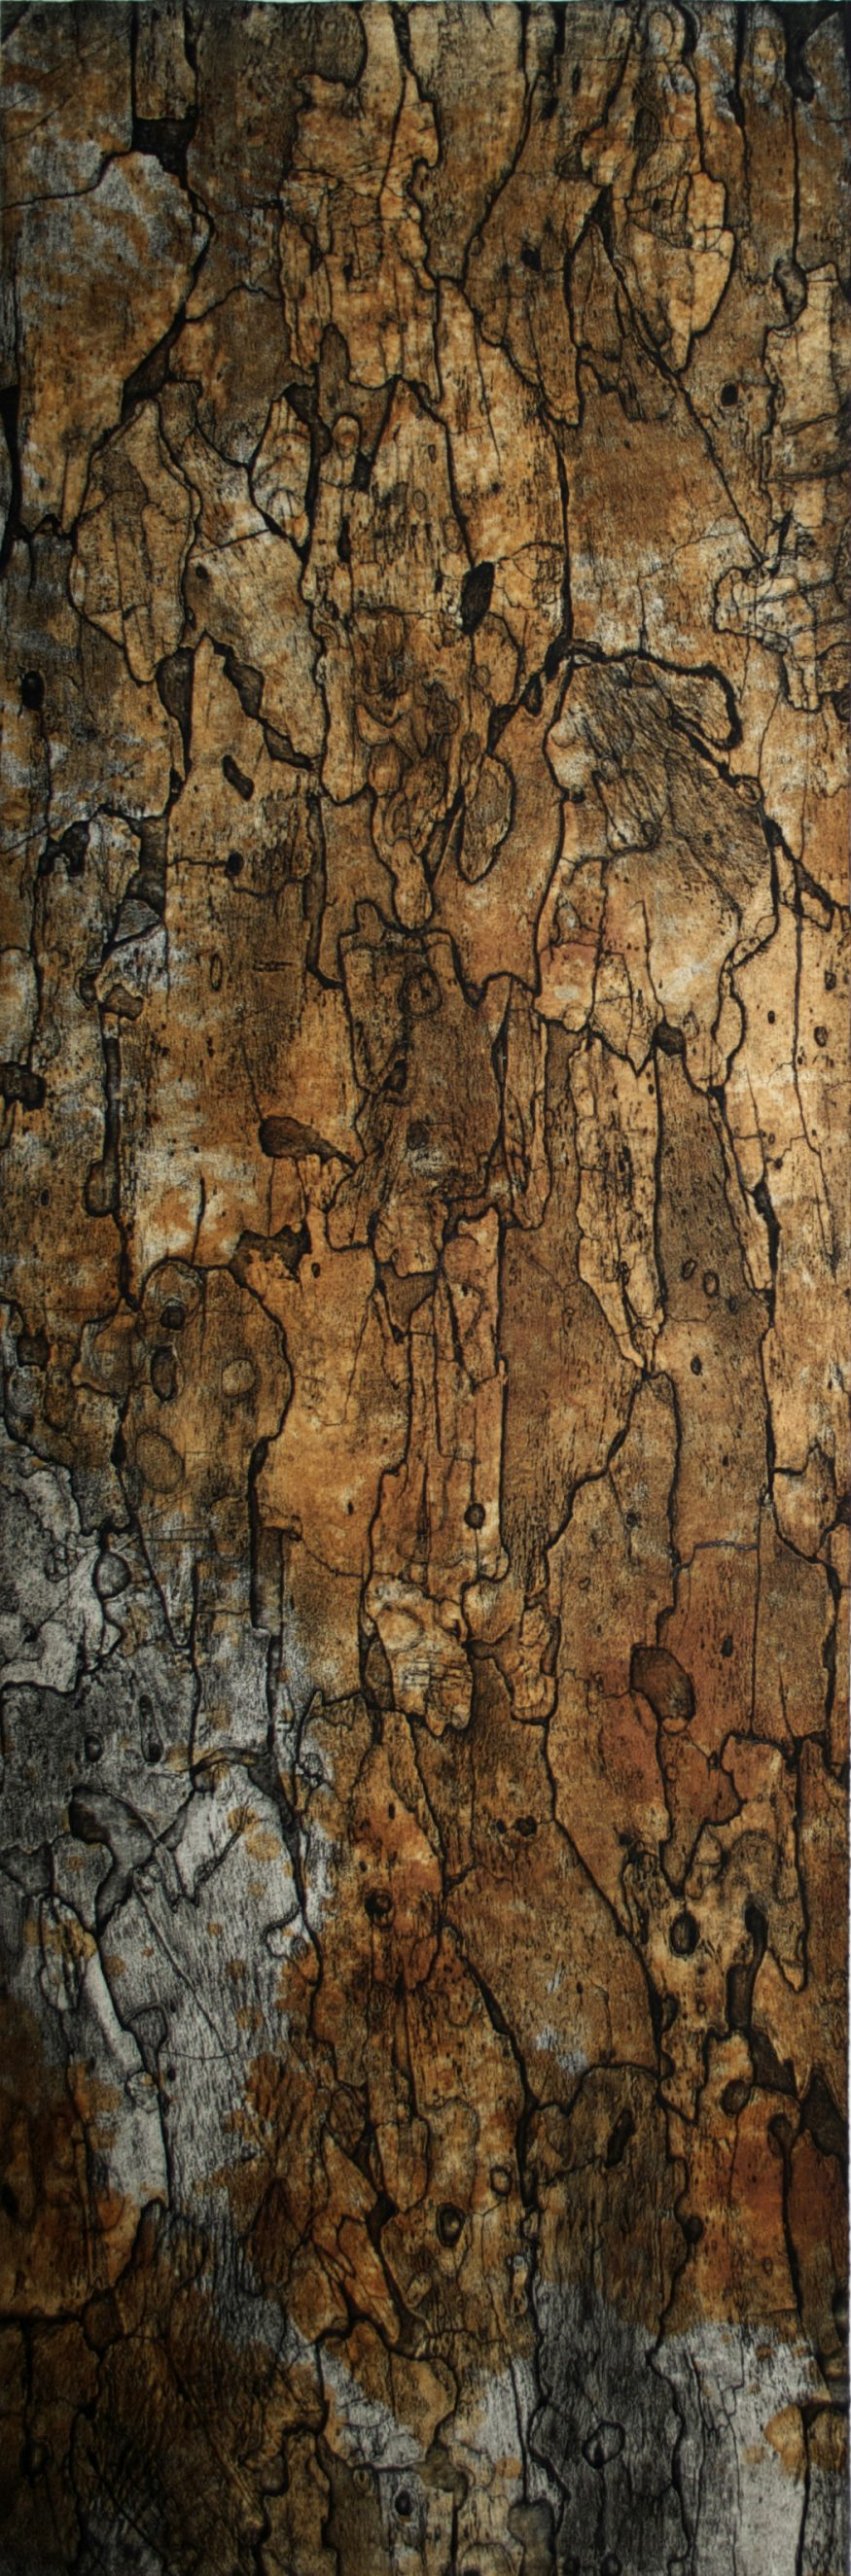 "Sycamore I – 70"" x 23"" Bark Intaglio and Rust Monoprints on Suzuki"